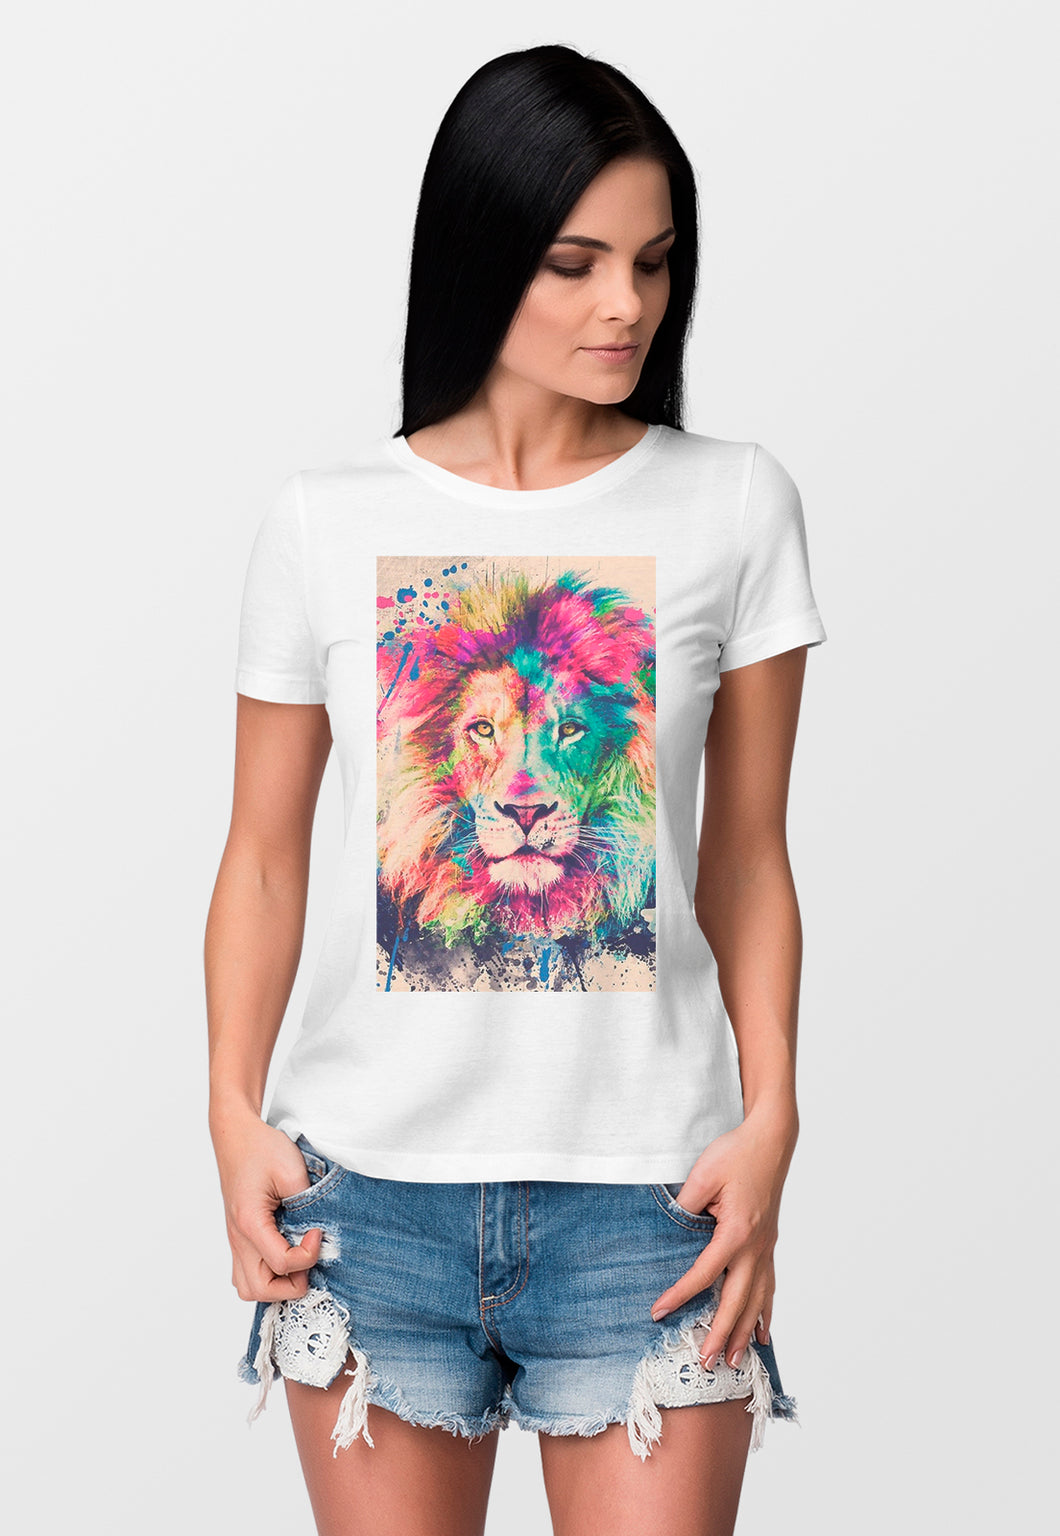 Camiseta Feminina Estampada Mirat - Watercolor Lion